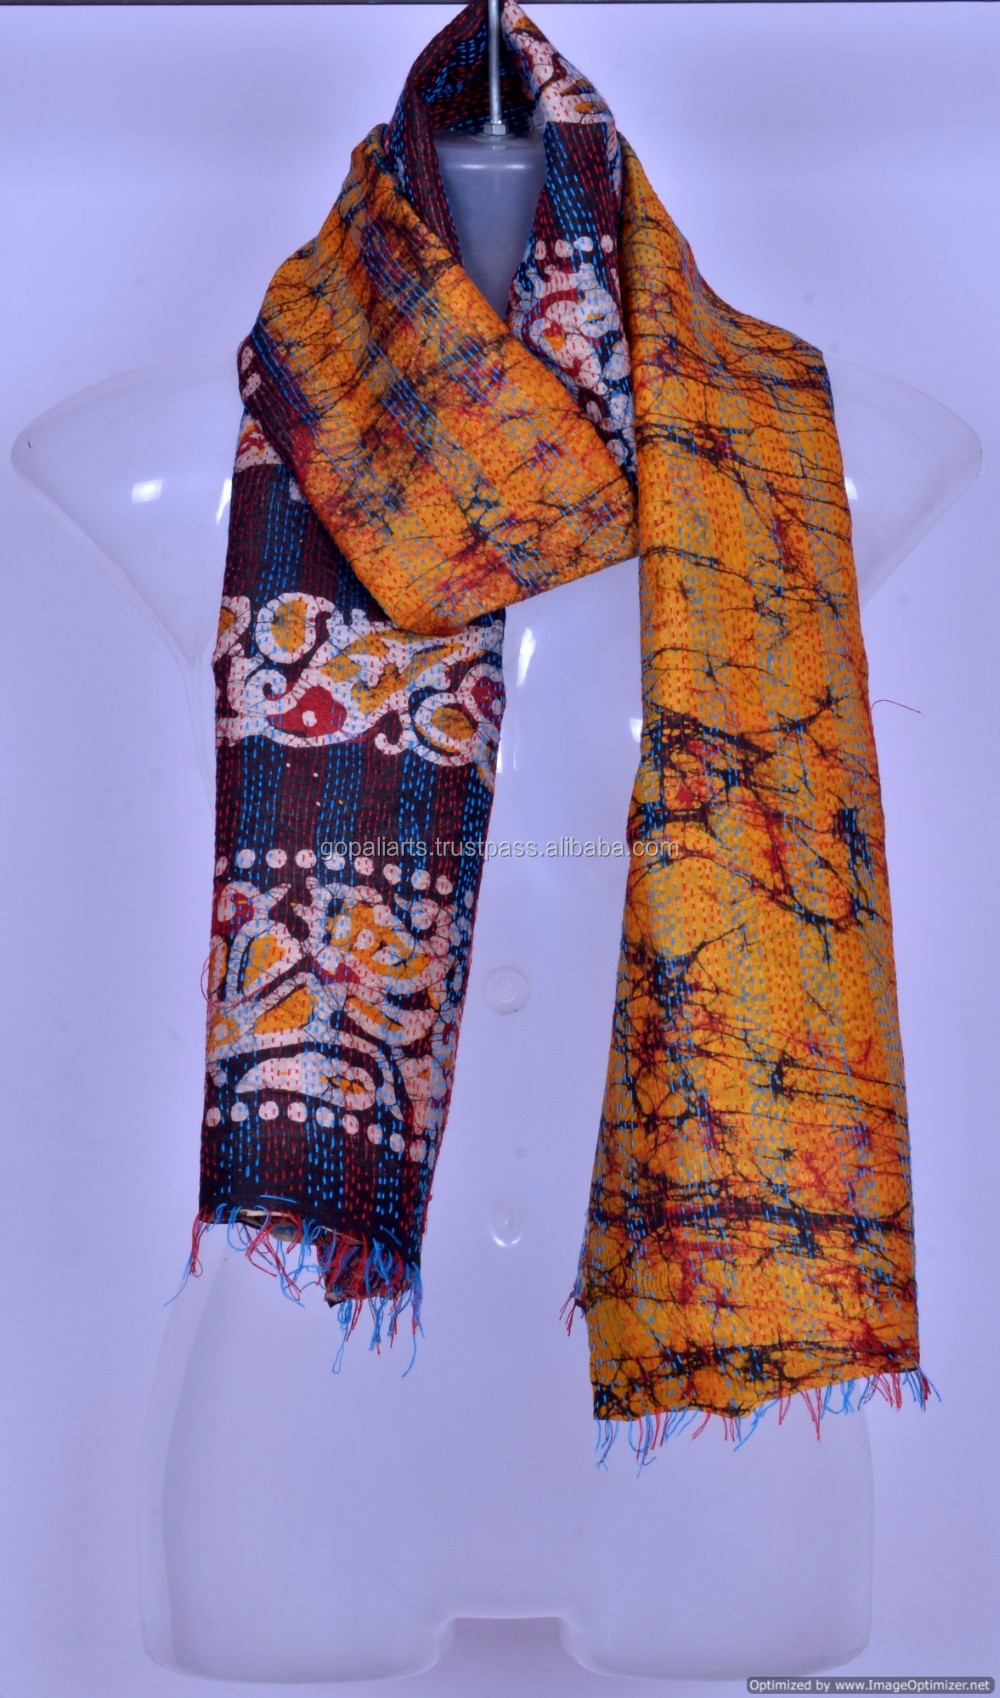 Silk Two Sided Reversible Two Tone Wrap Scarf Stole Shawl Hijab Head Scarves